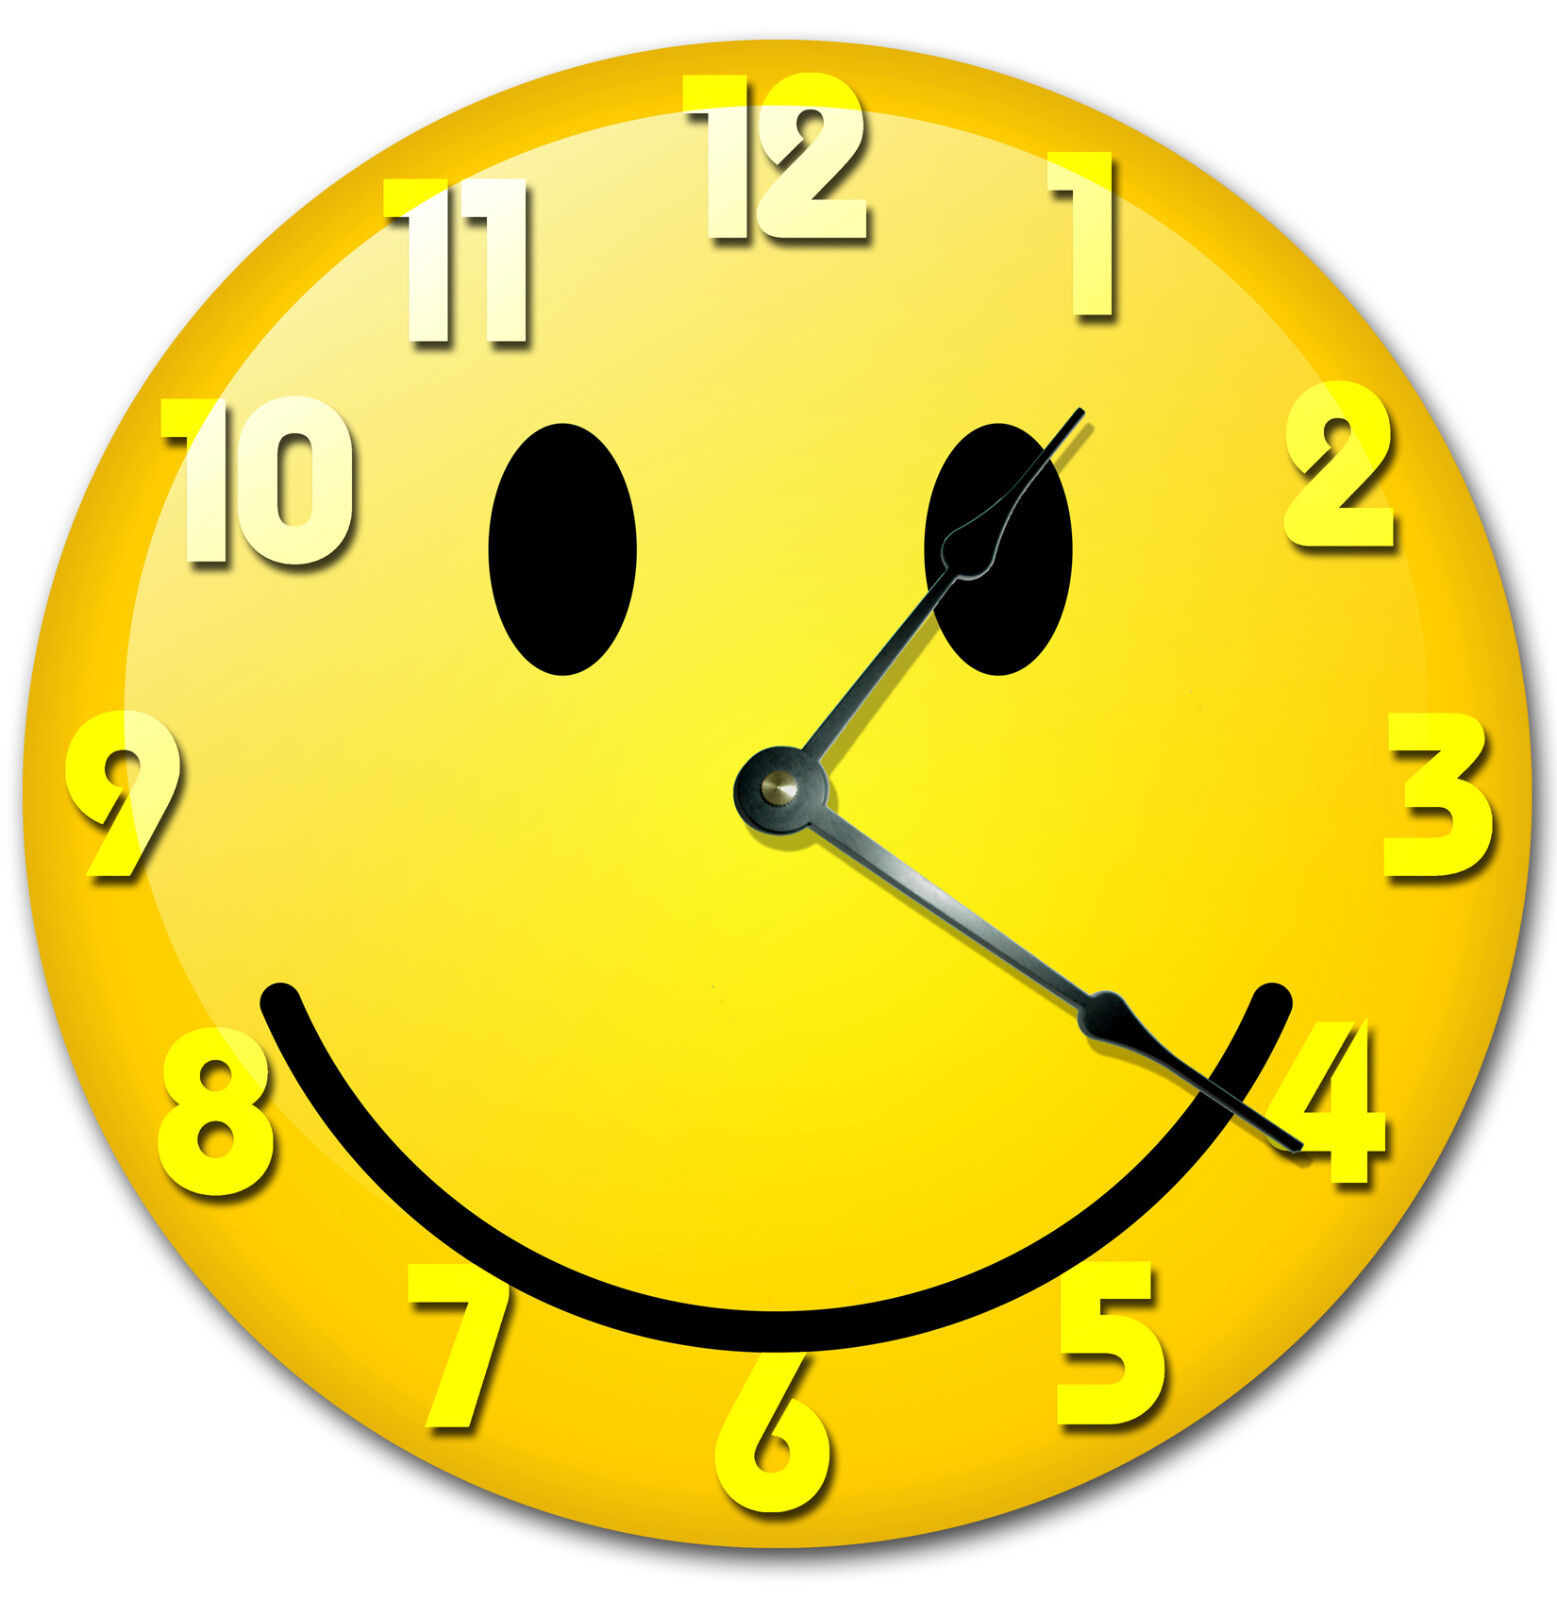 This is a graphic of Agile Clock Face Images